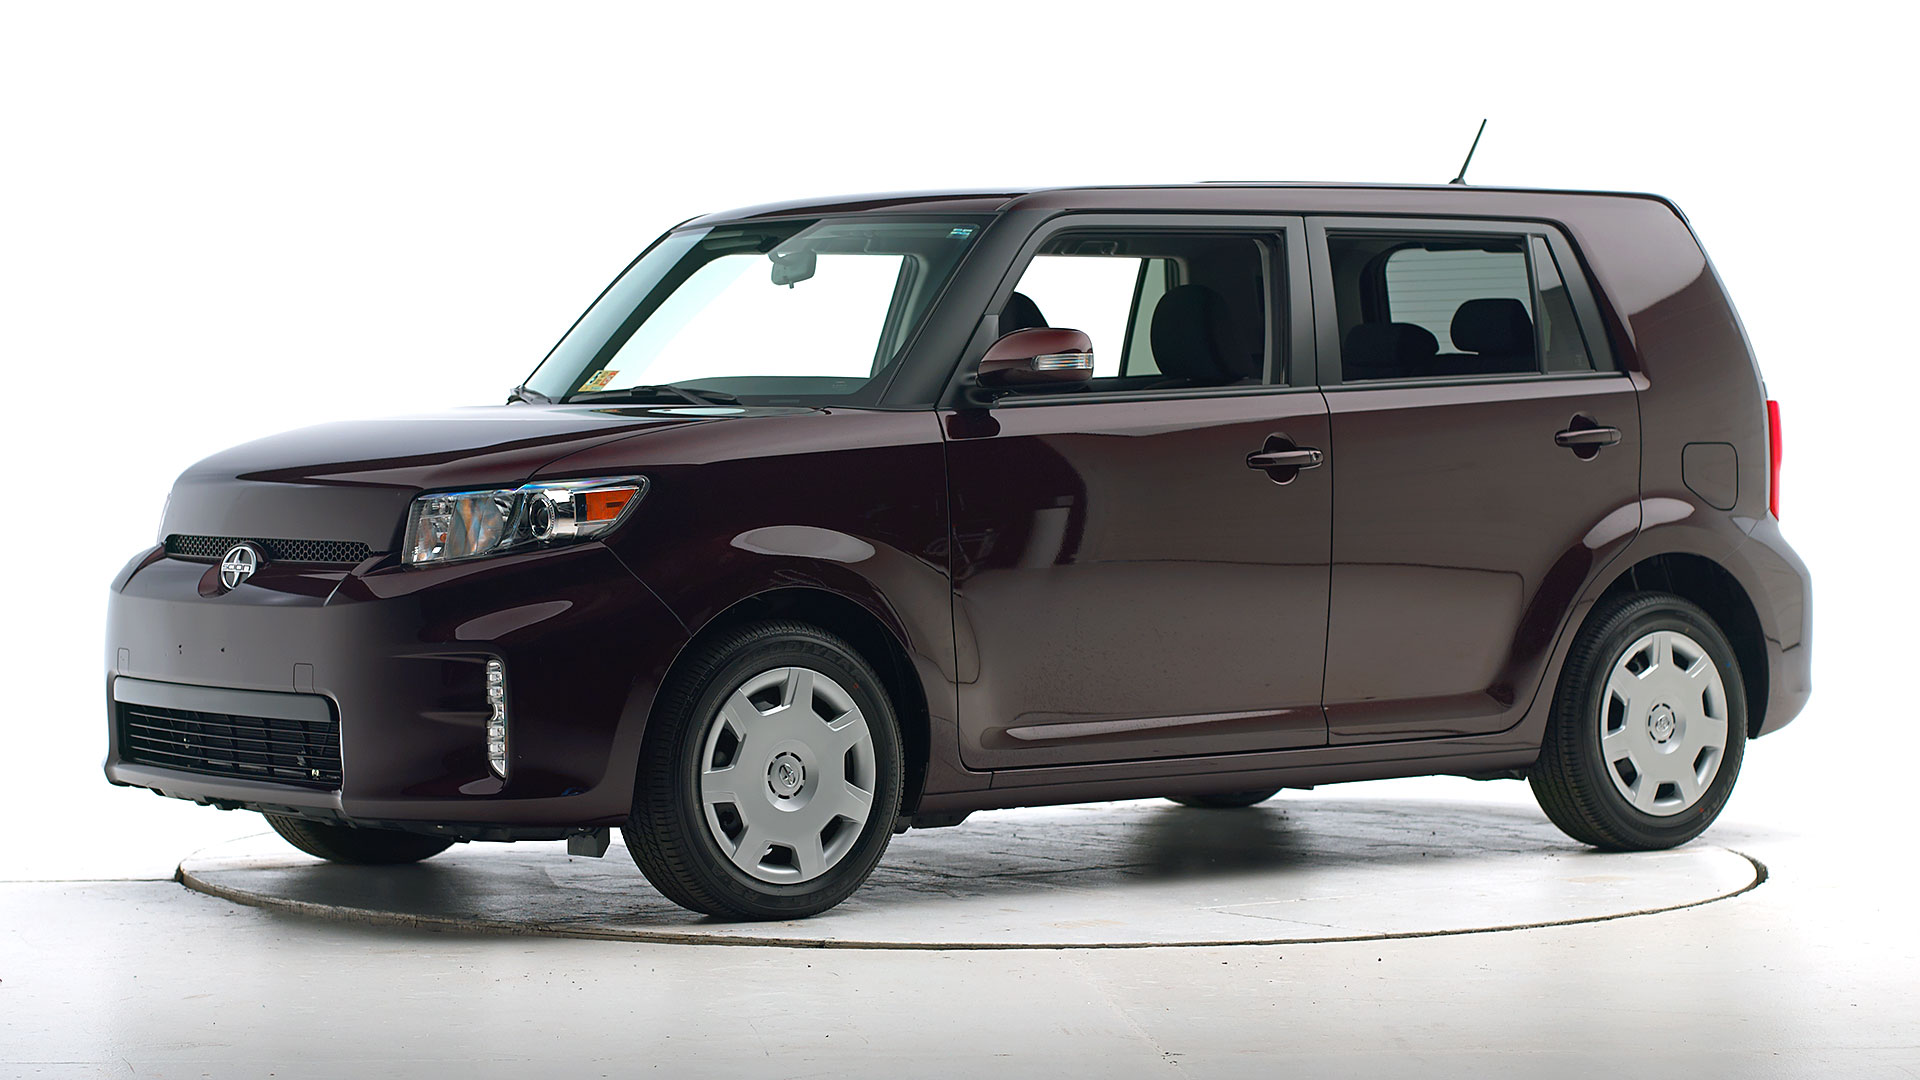 2014 Scion xB 4-door wagon